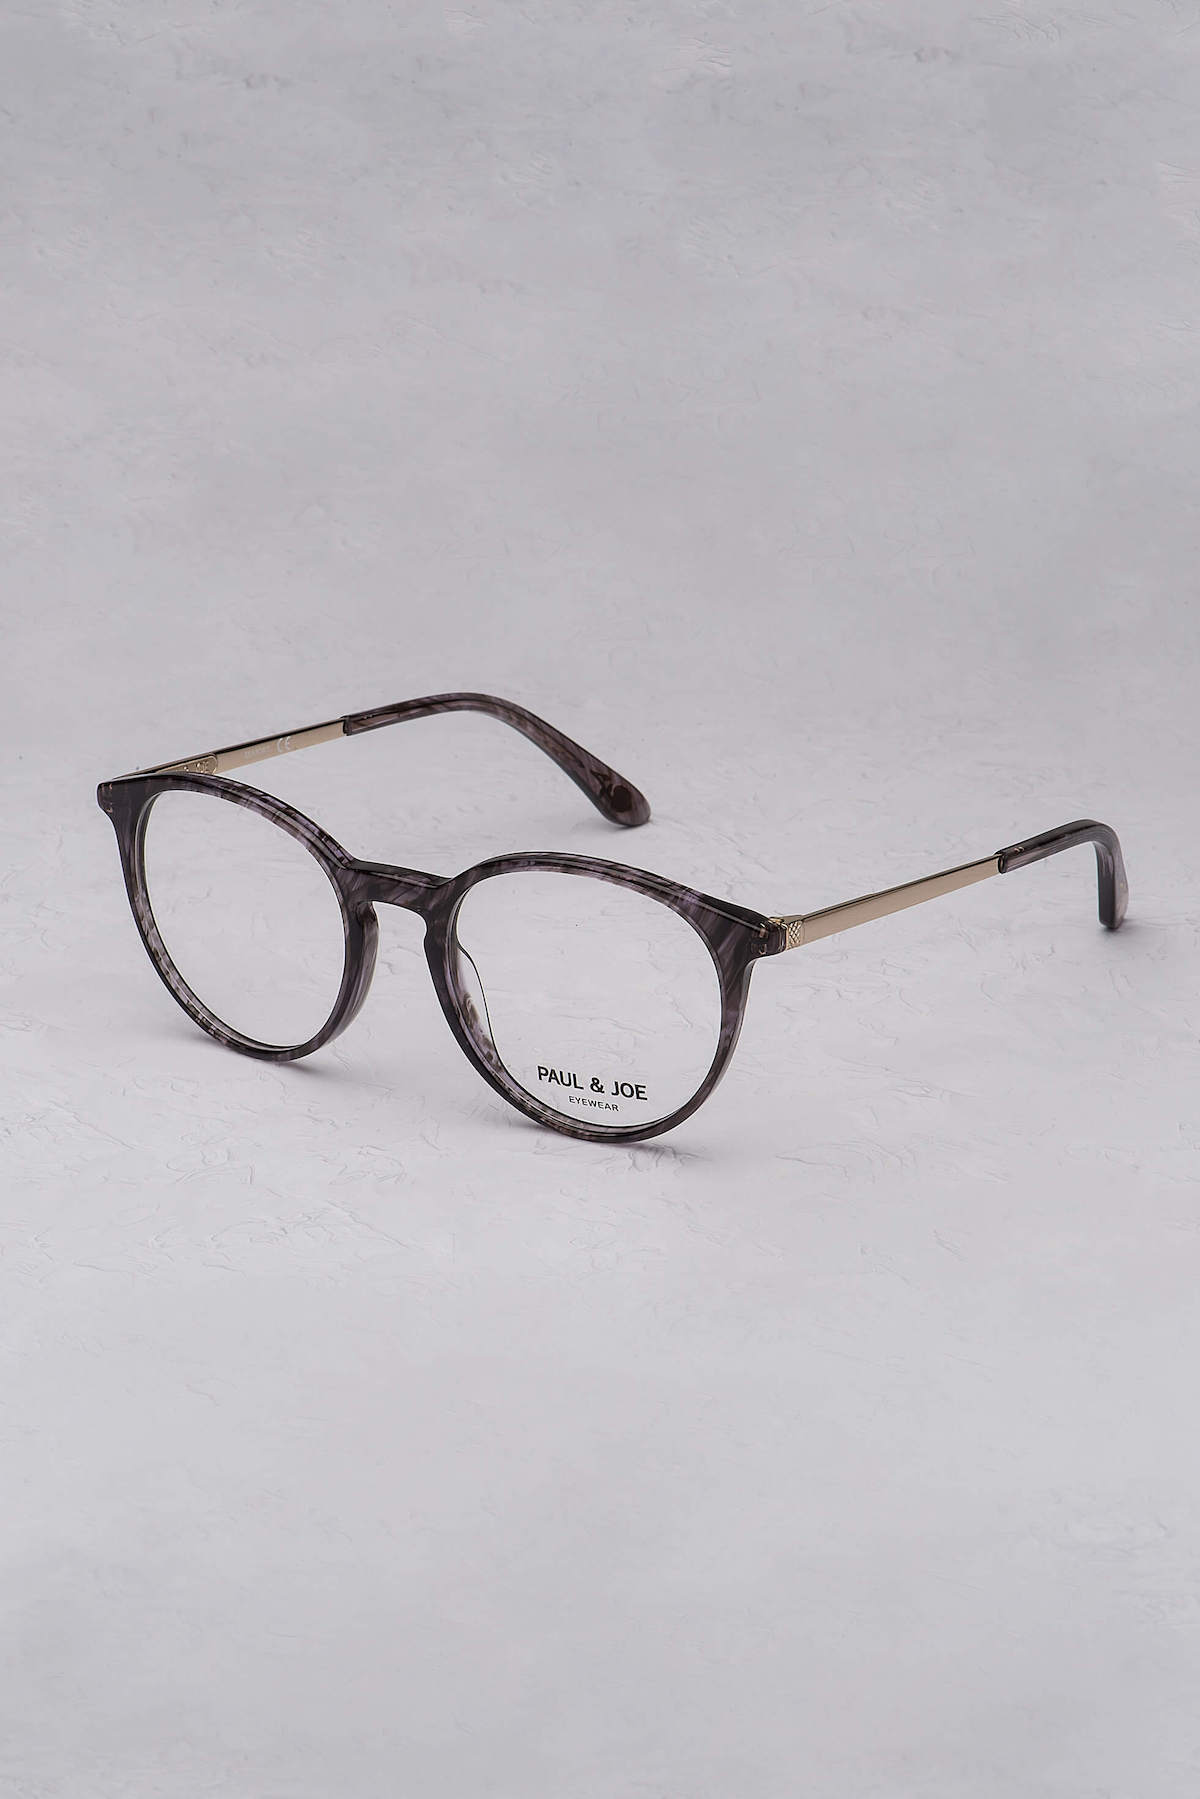 79f5370b9a7 Lunette de vue Paul   Joe - Rosy32 Ronde - Optic Duroc